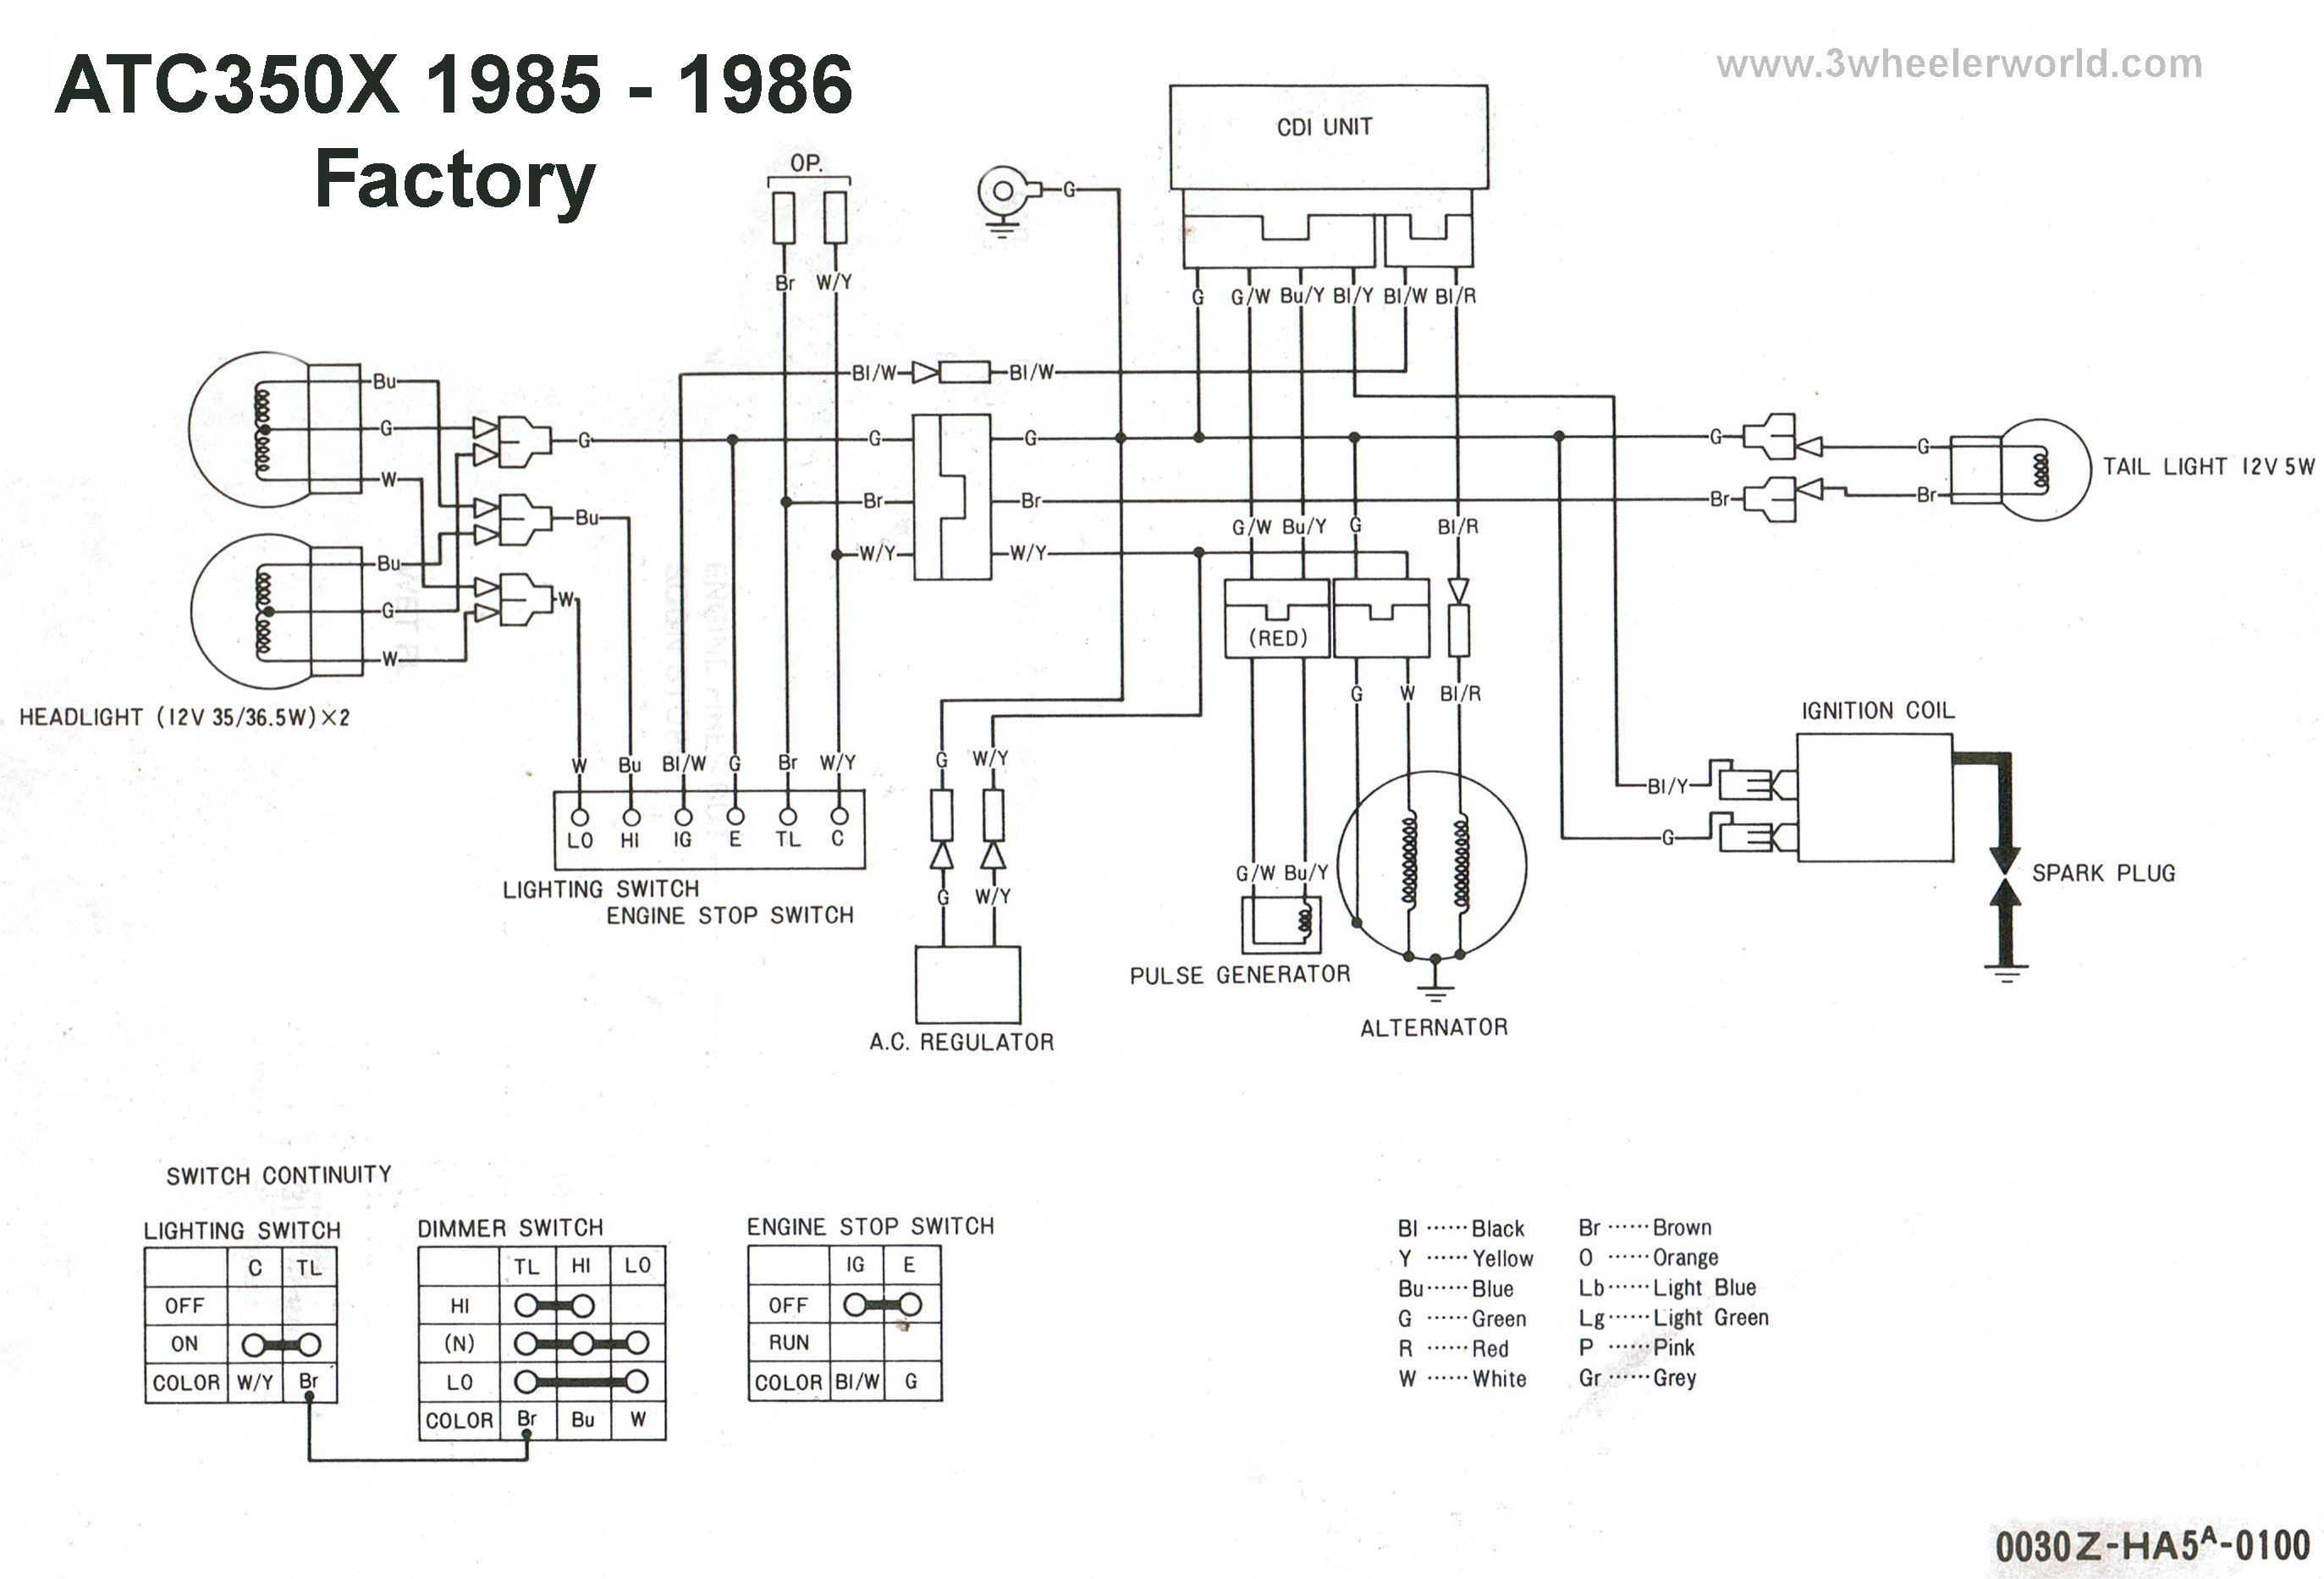 ATC350Xx85Thru86 98 honda fourtrax diagrams wiring diagram simonand trx350 wiring diagram 1987 at suagrazia.org